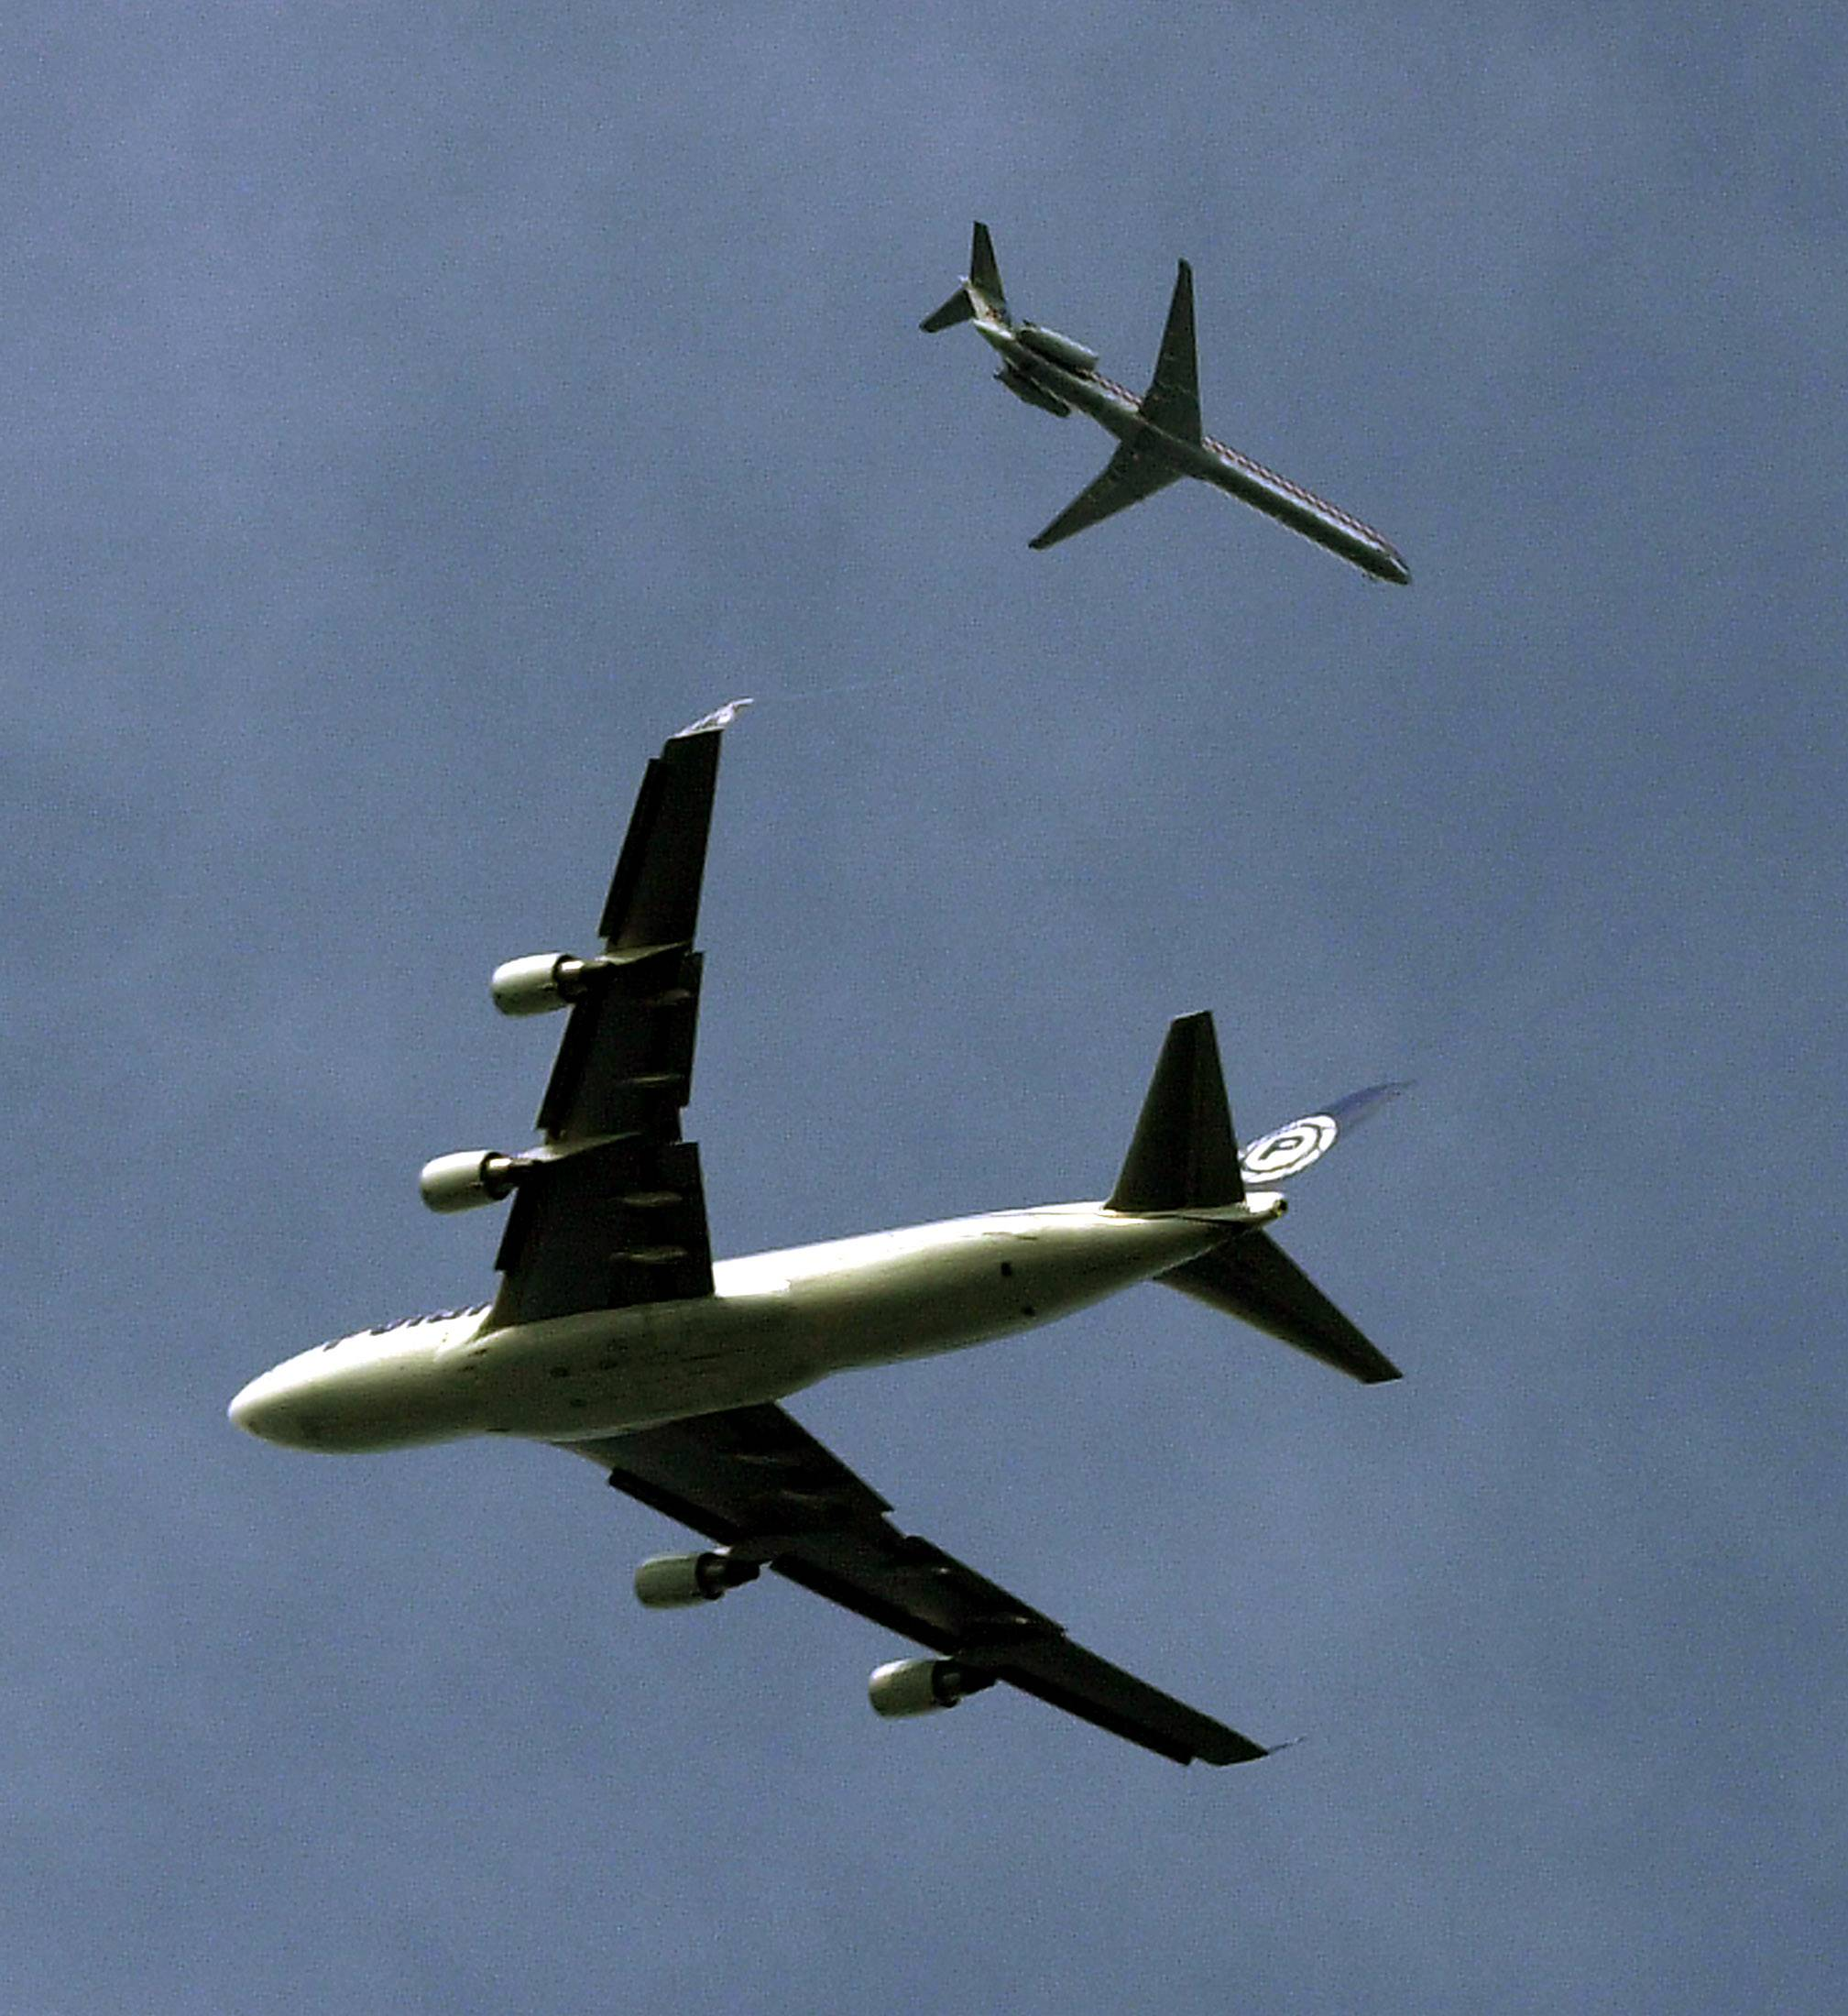 Noise commission members are struggling with evenly distributing the nighttime din from jets.